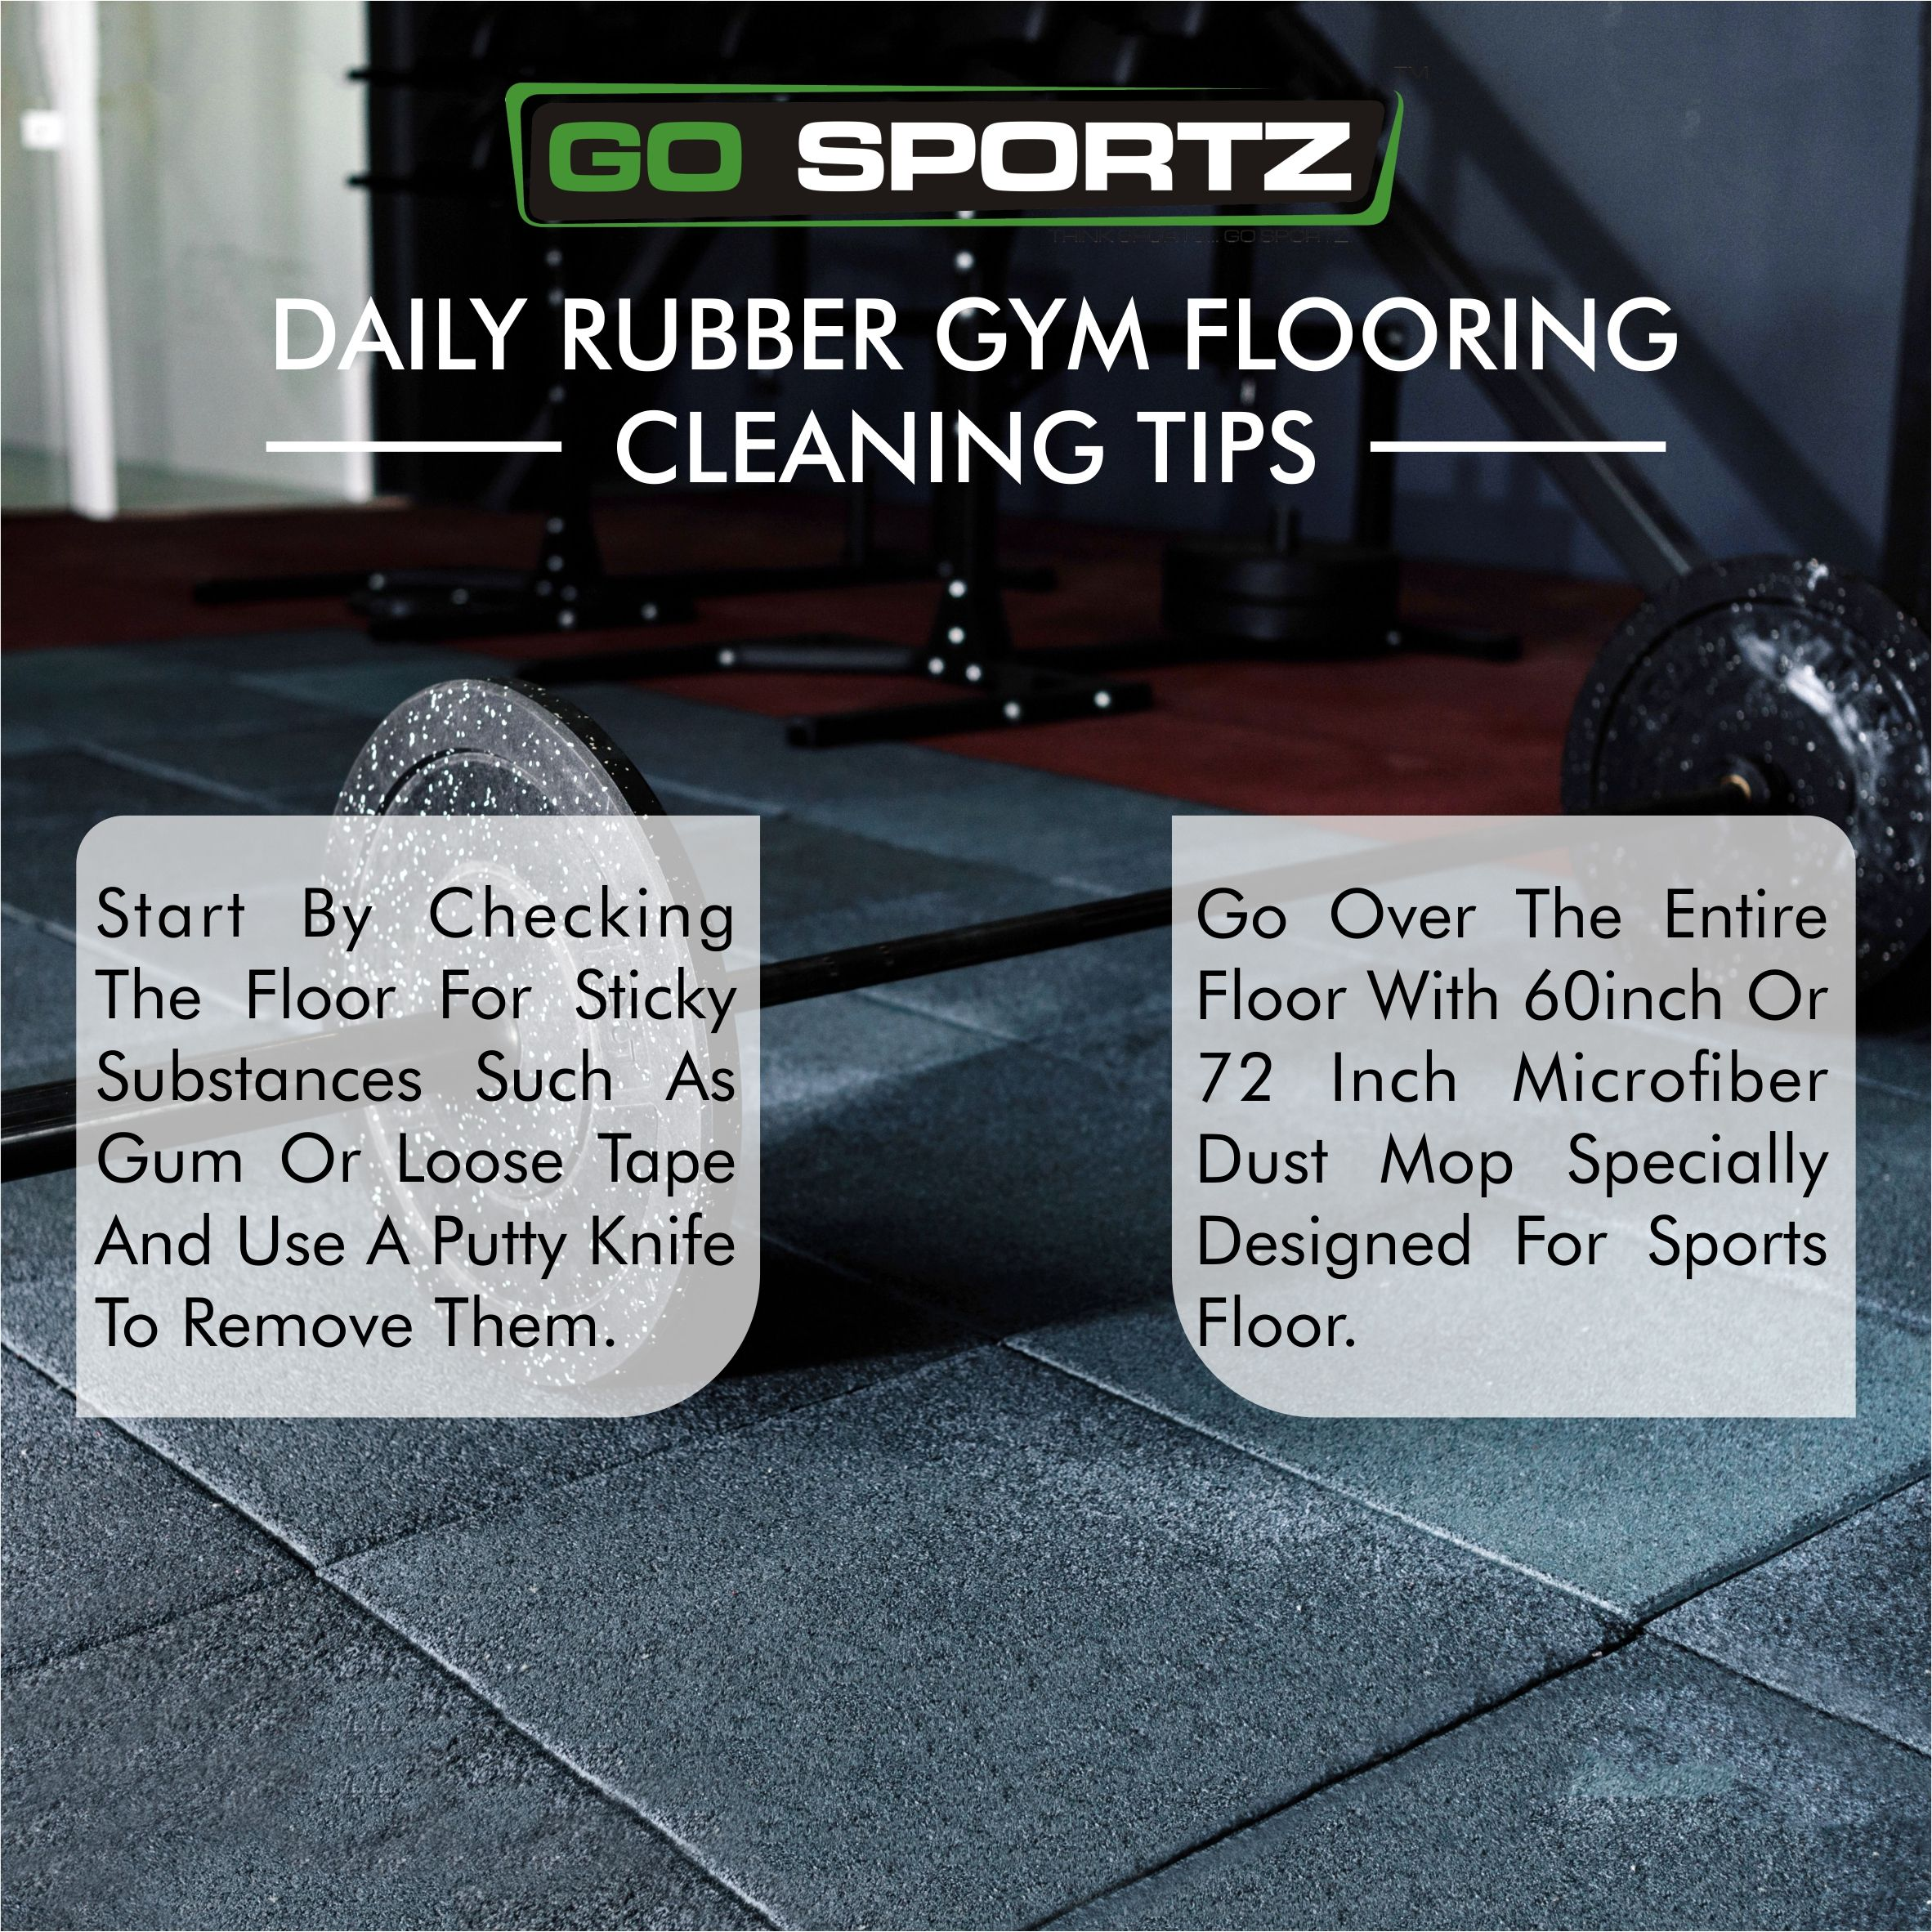 Here are some cleaning tips for your rubber gym flooring